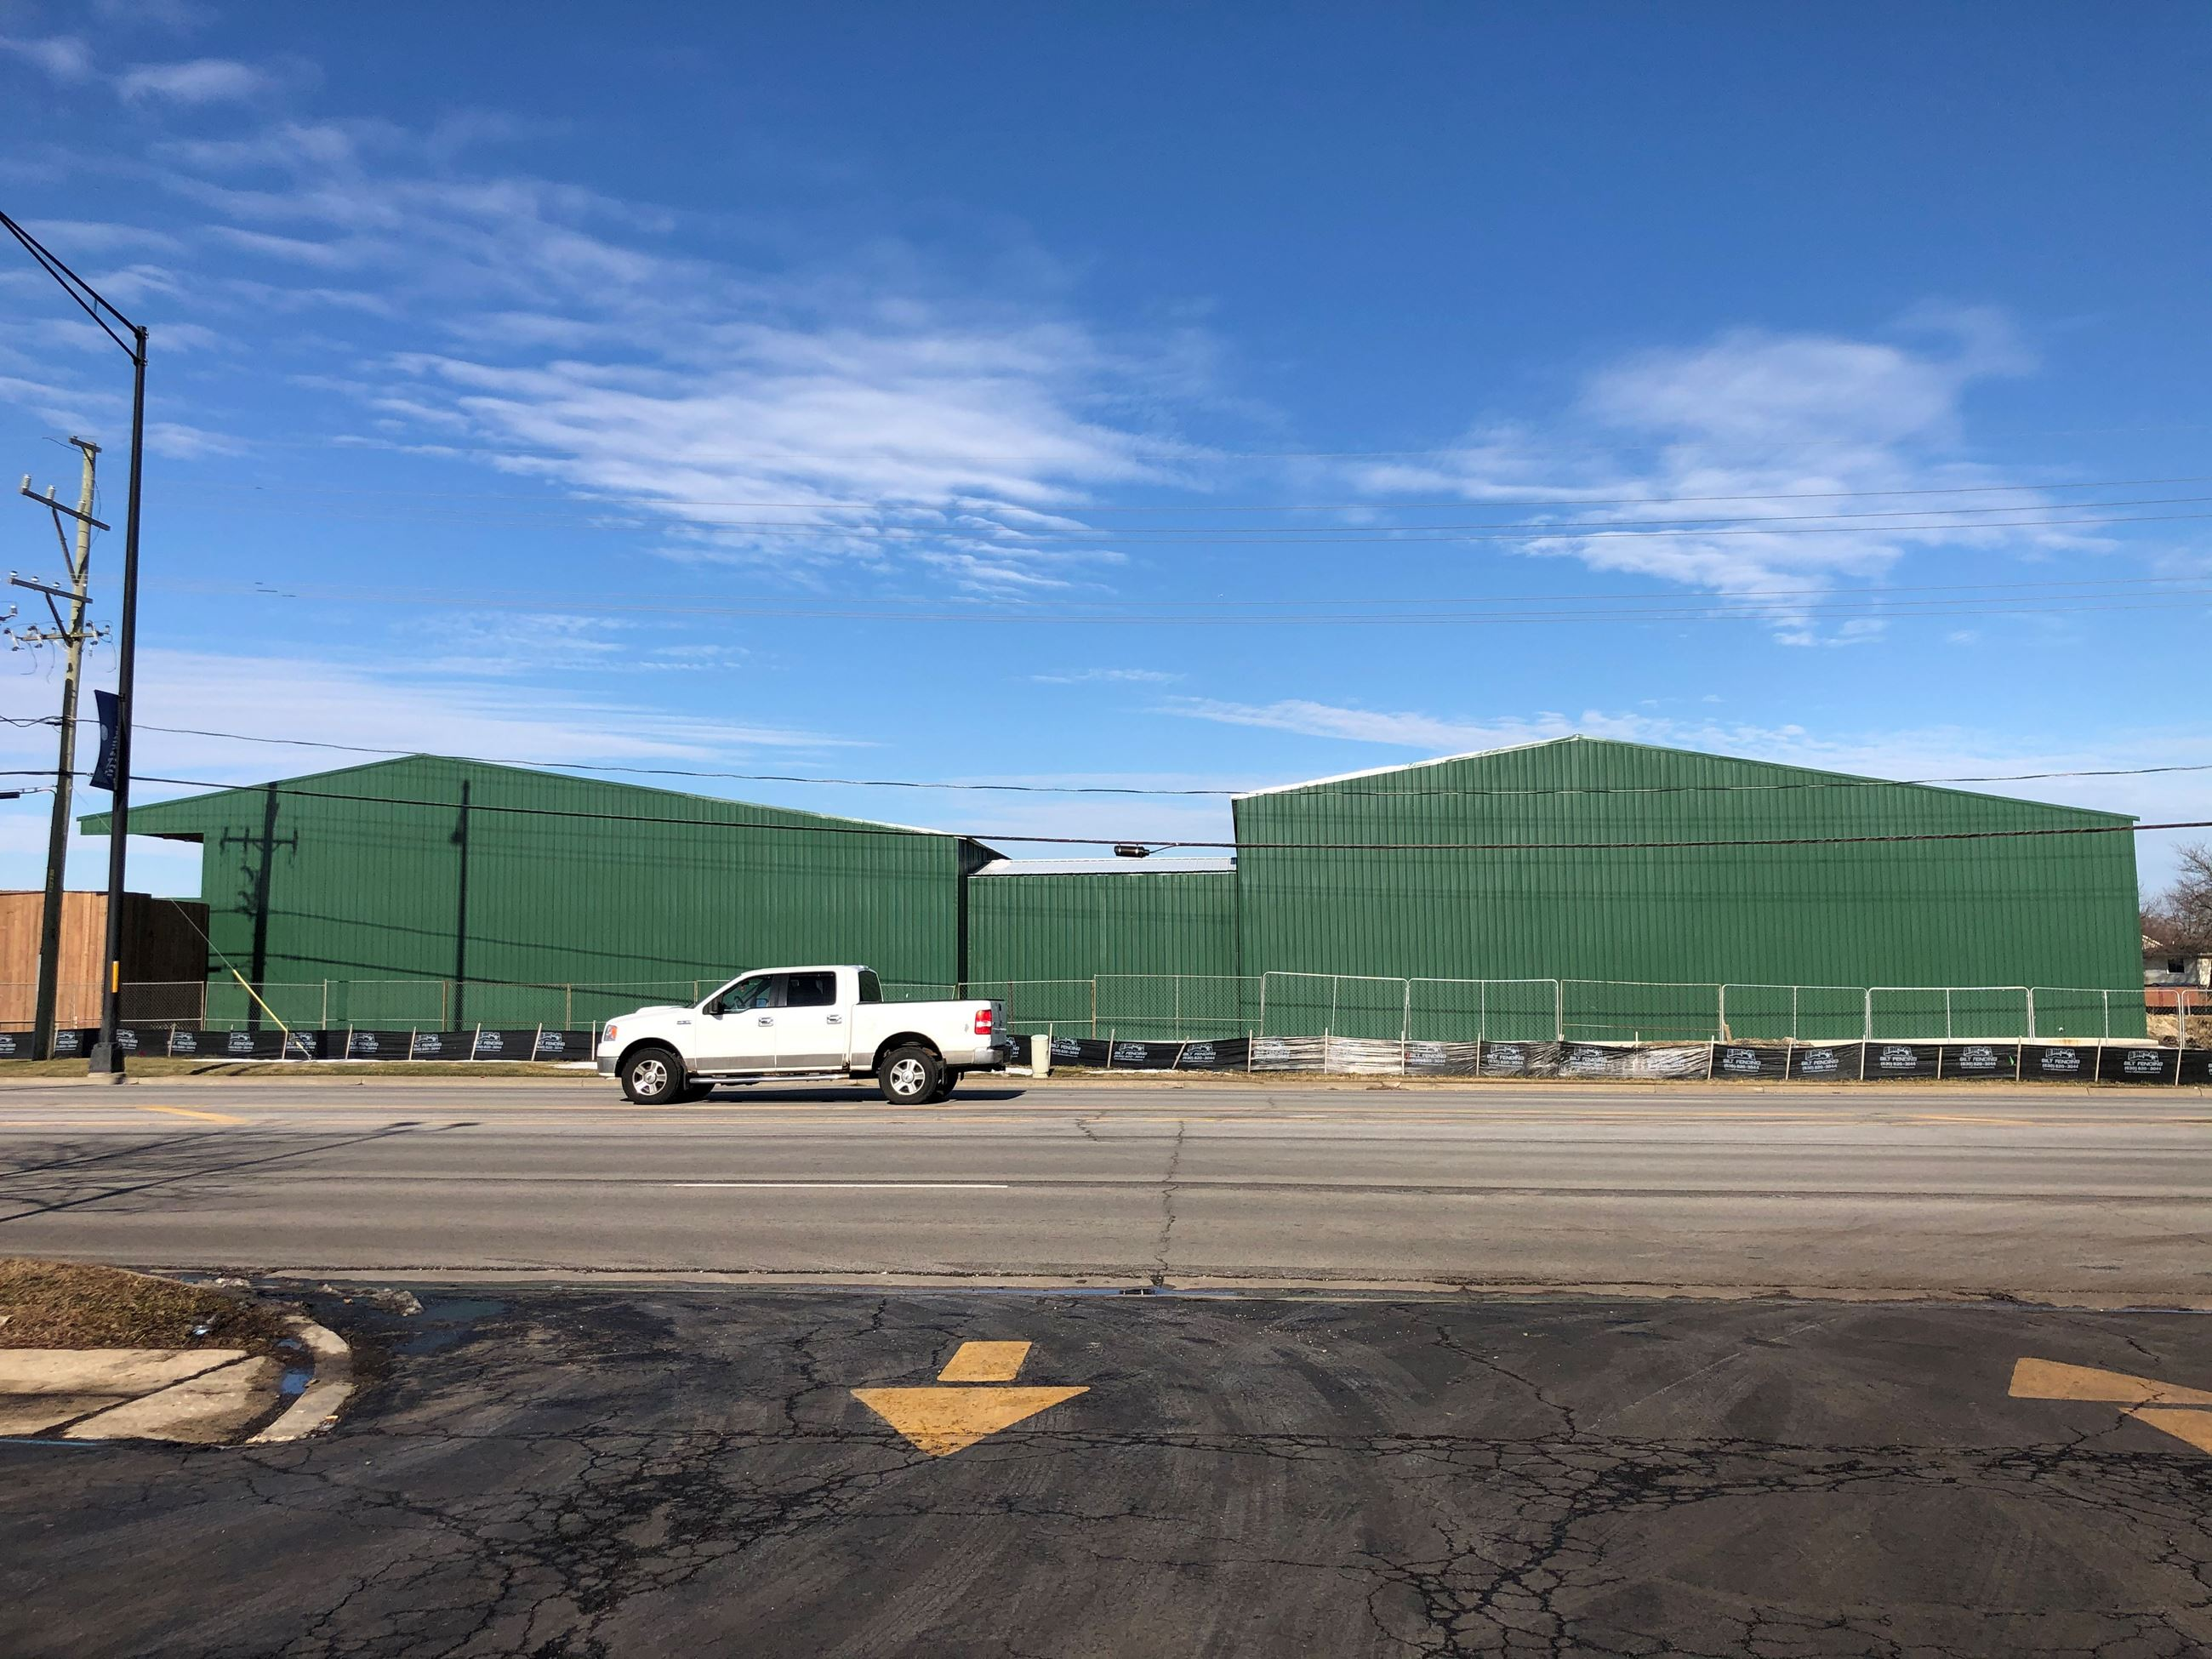 Menards Warehouse Expansion